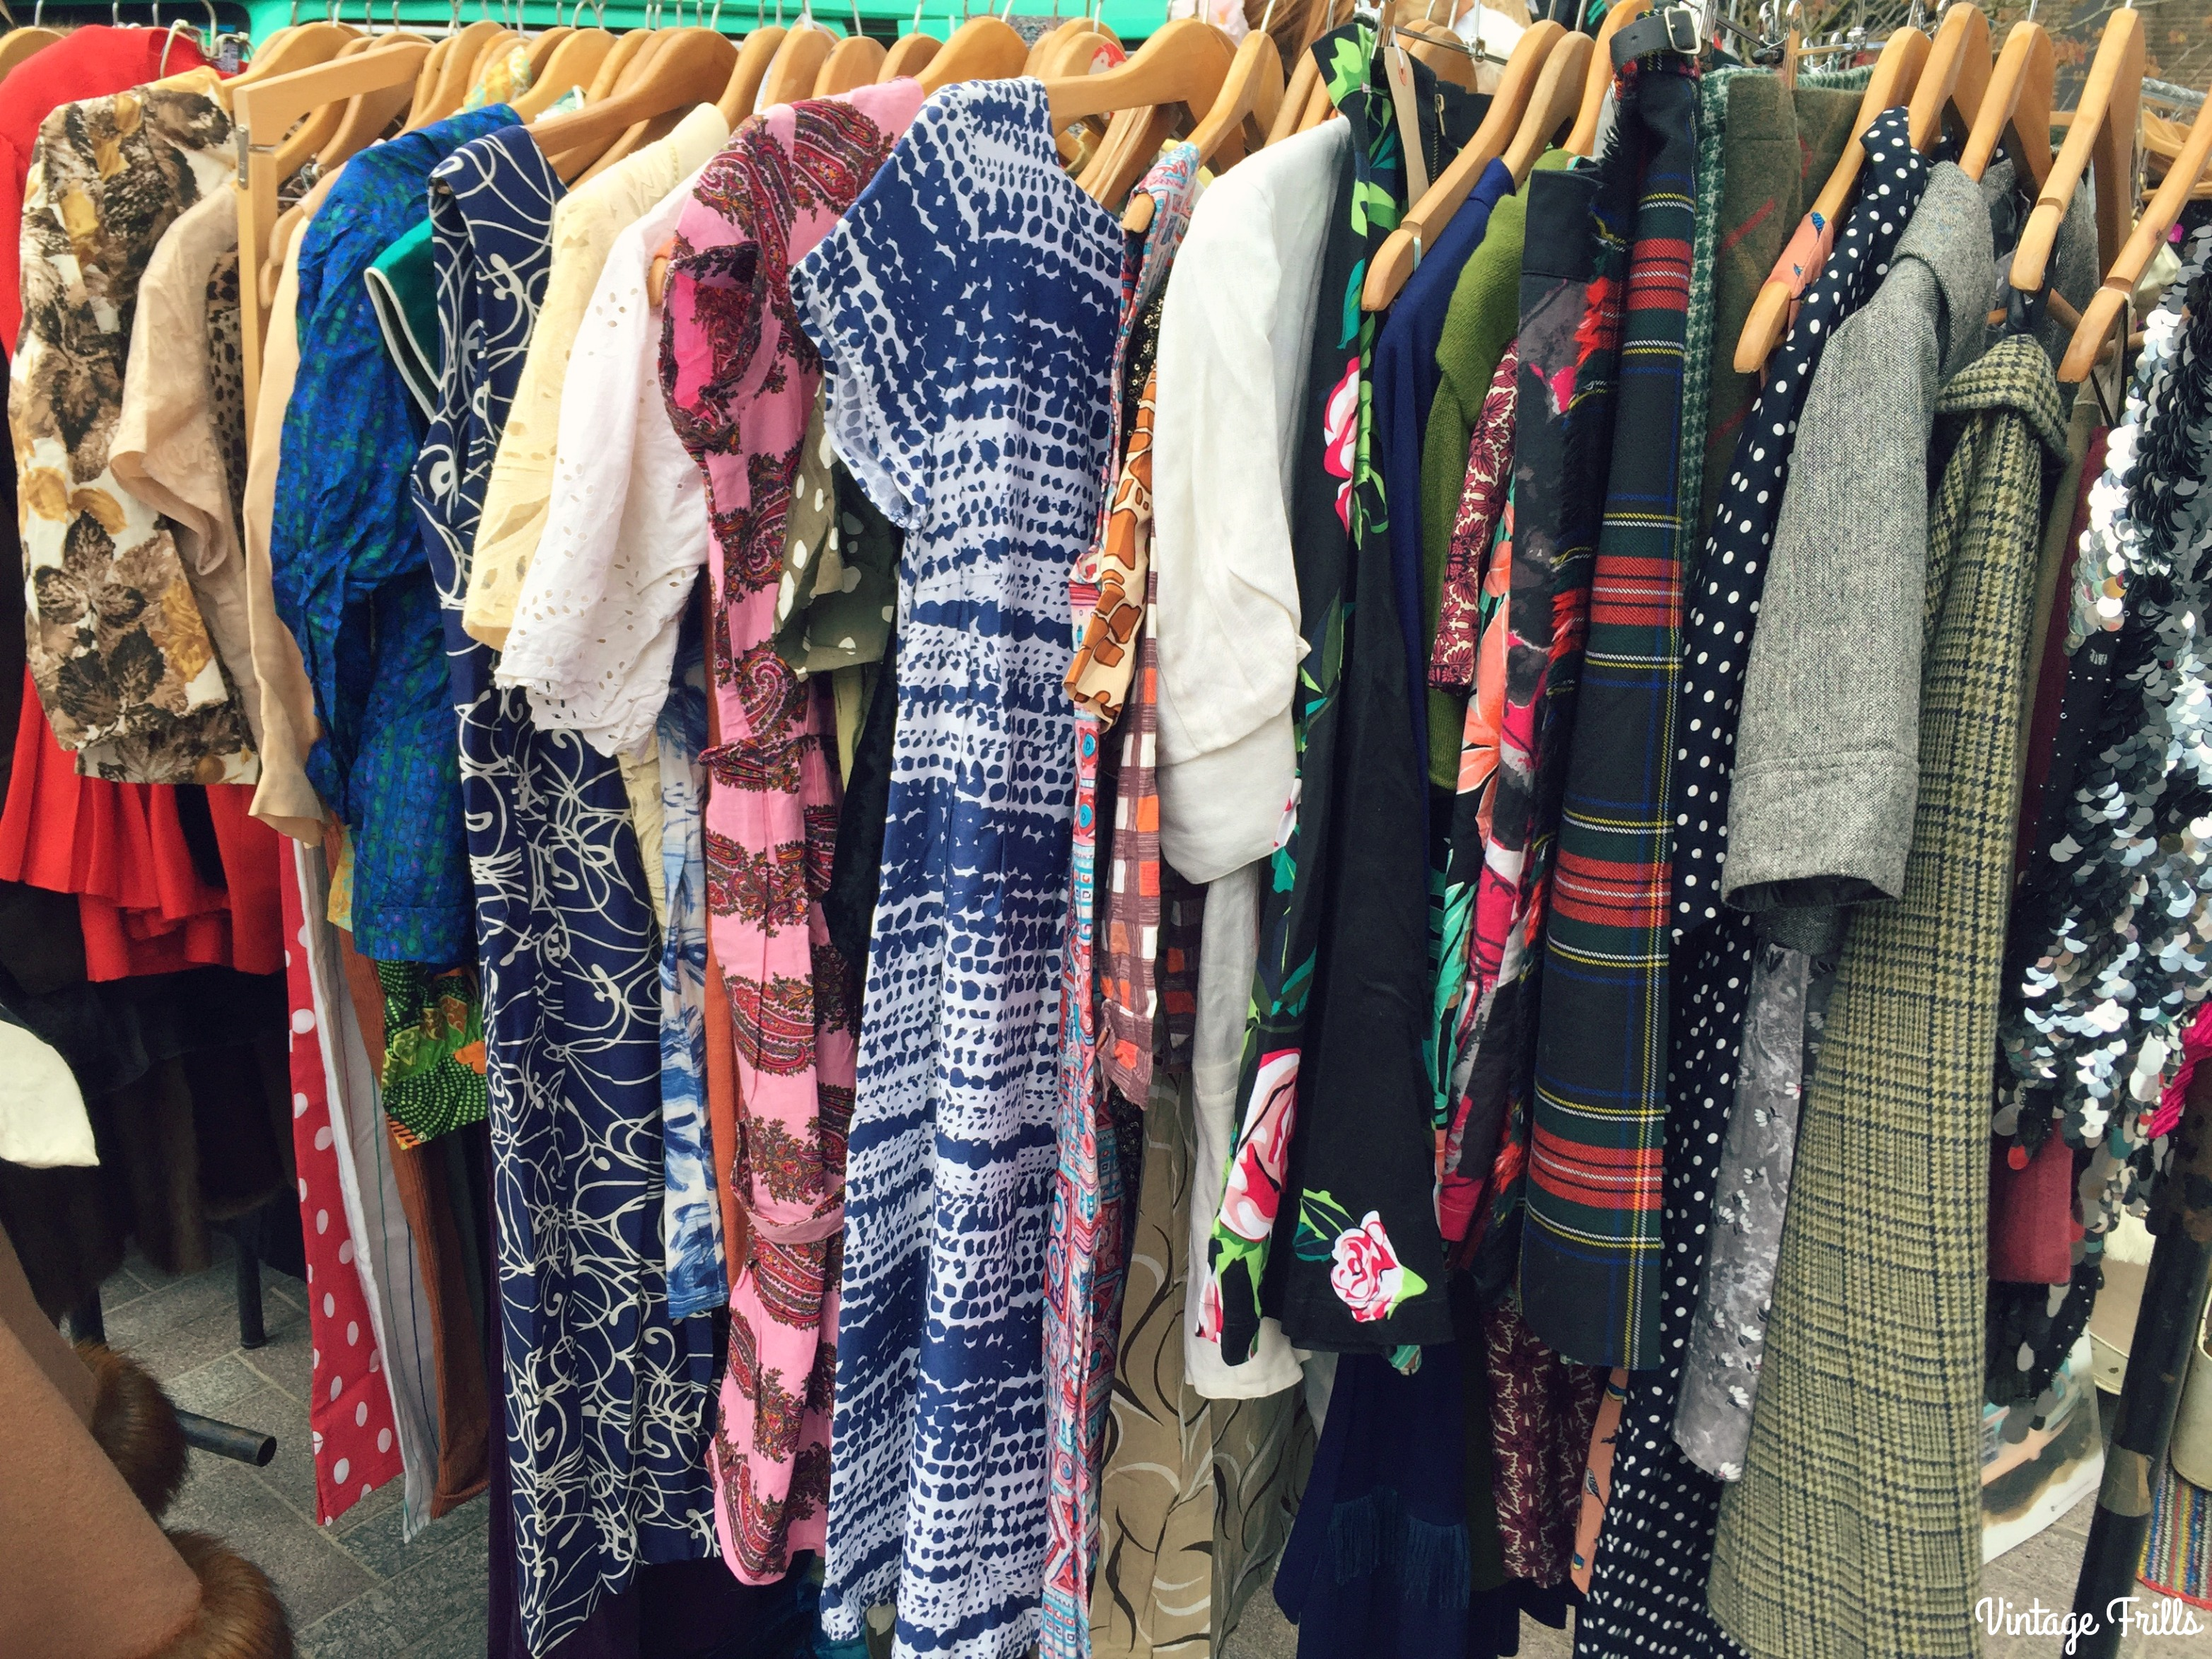 classic-car-boot-sale-vintage-dresses